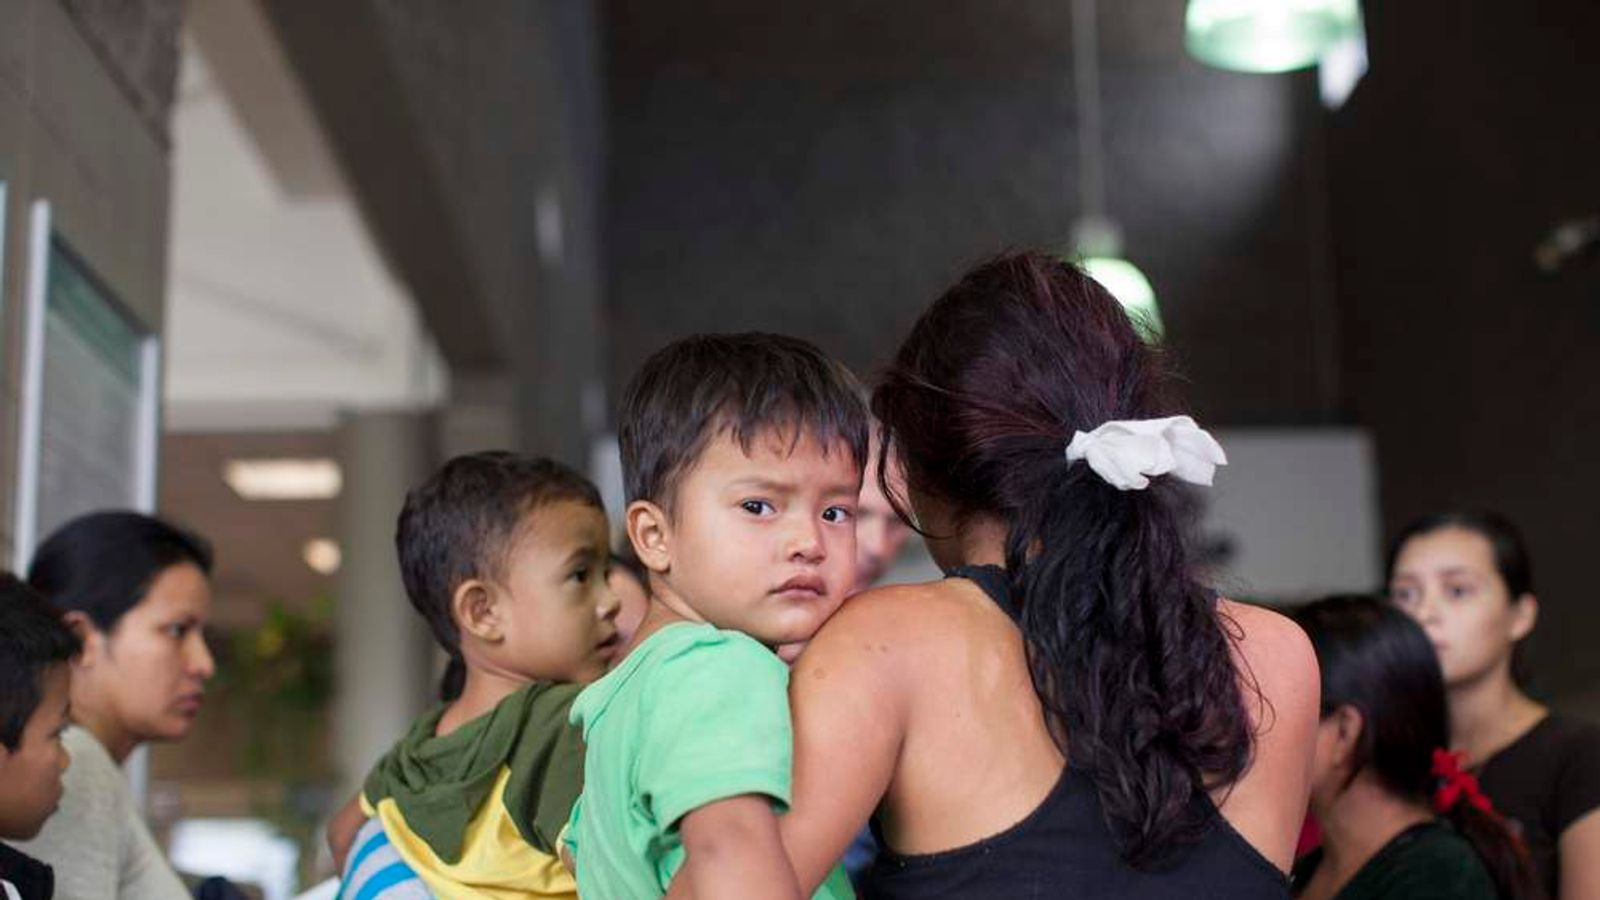 an examination of child migration from central america